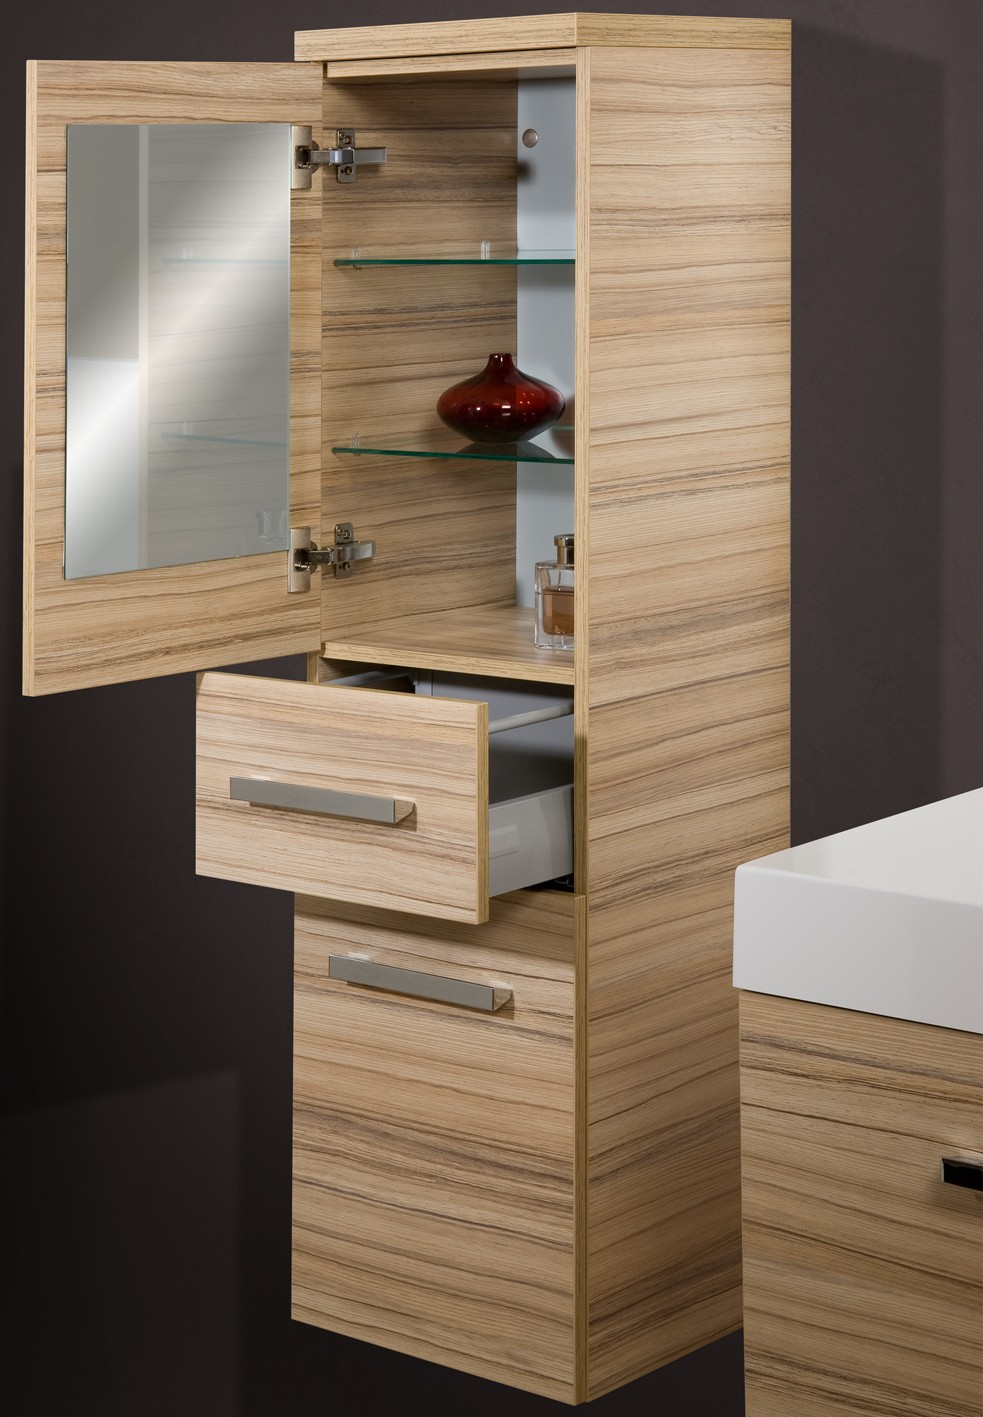 badezimmerm bel set mit glaswaschbecken 90 cm 349. Black Bedroom Furniture Sets. Home Design Ideas